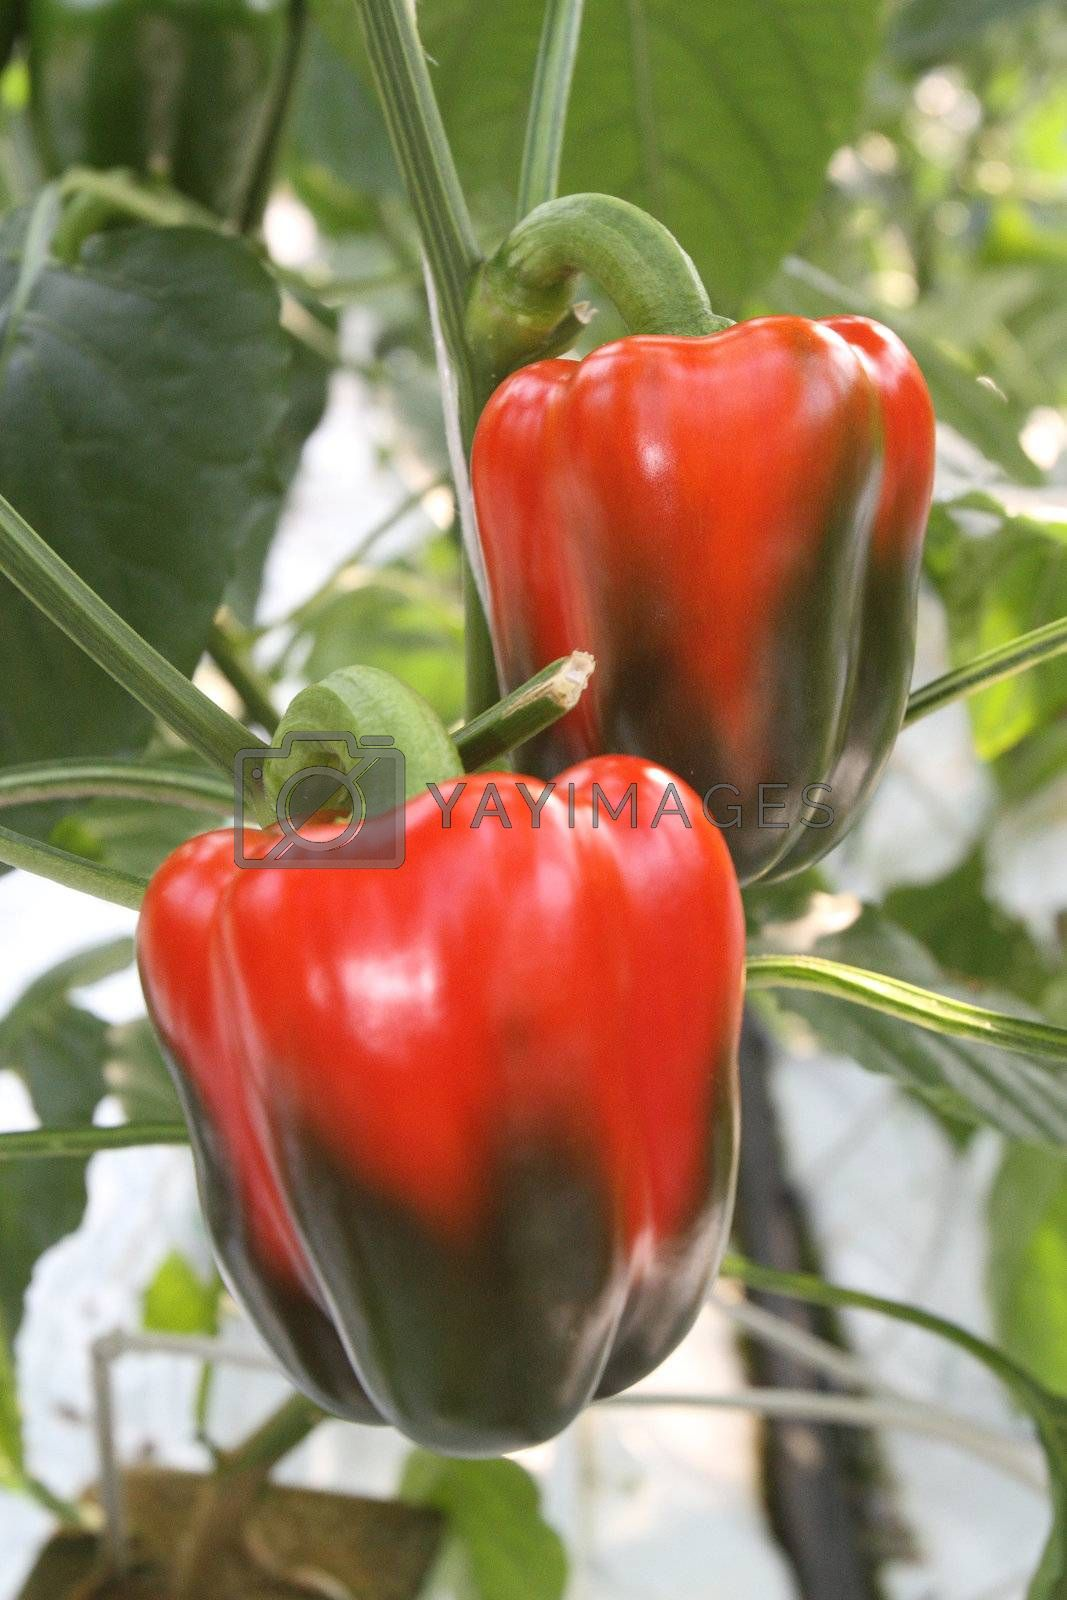 Green and red peppers growing in a garden